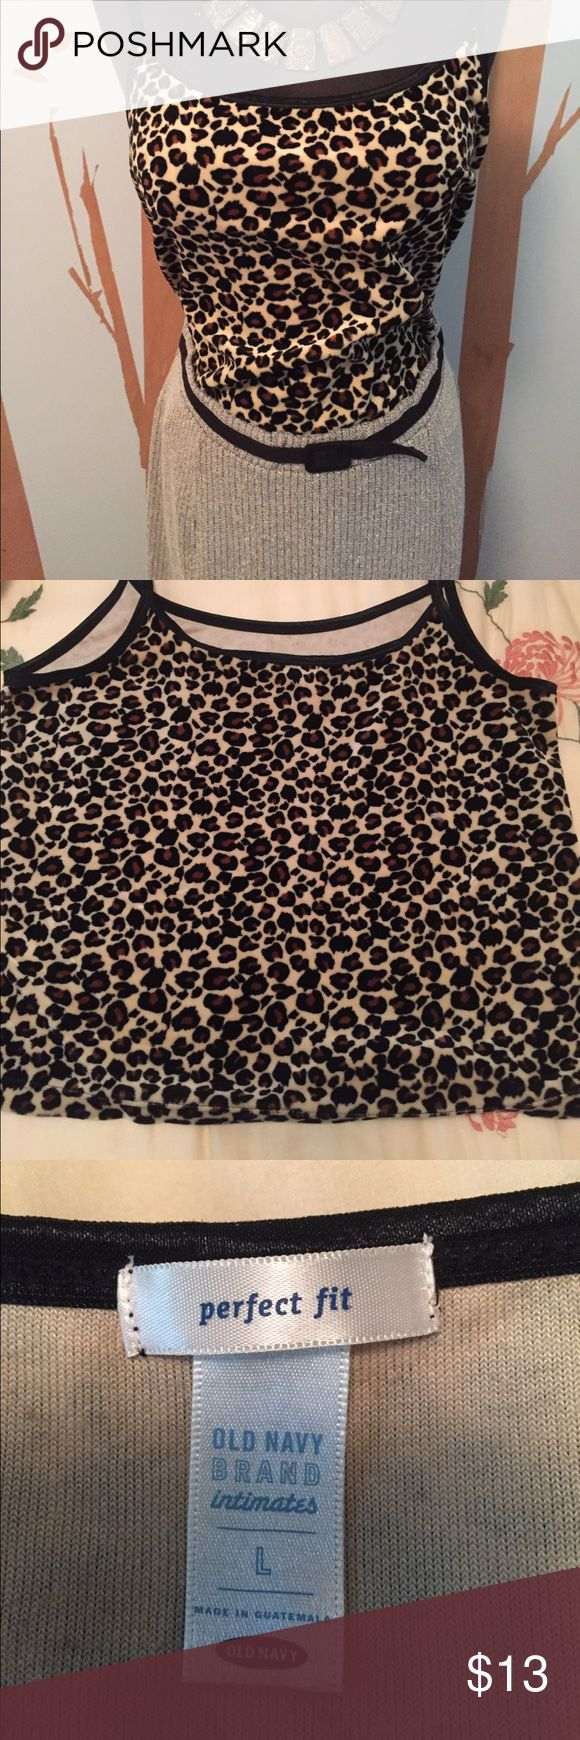 Old Navy velveteen cami Sexy animal print Velveteen cami by old navy size large 36 inch at bust perfect fit line Old Navy Tops Camisoles